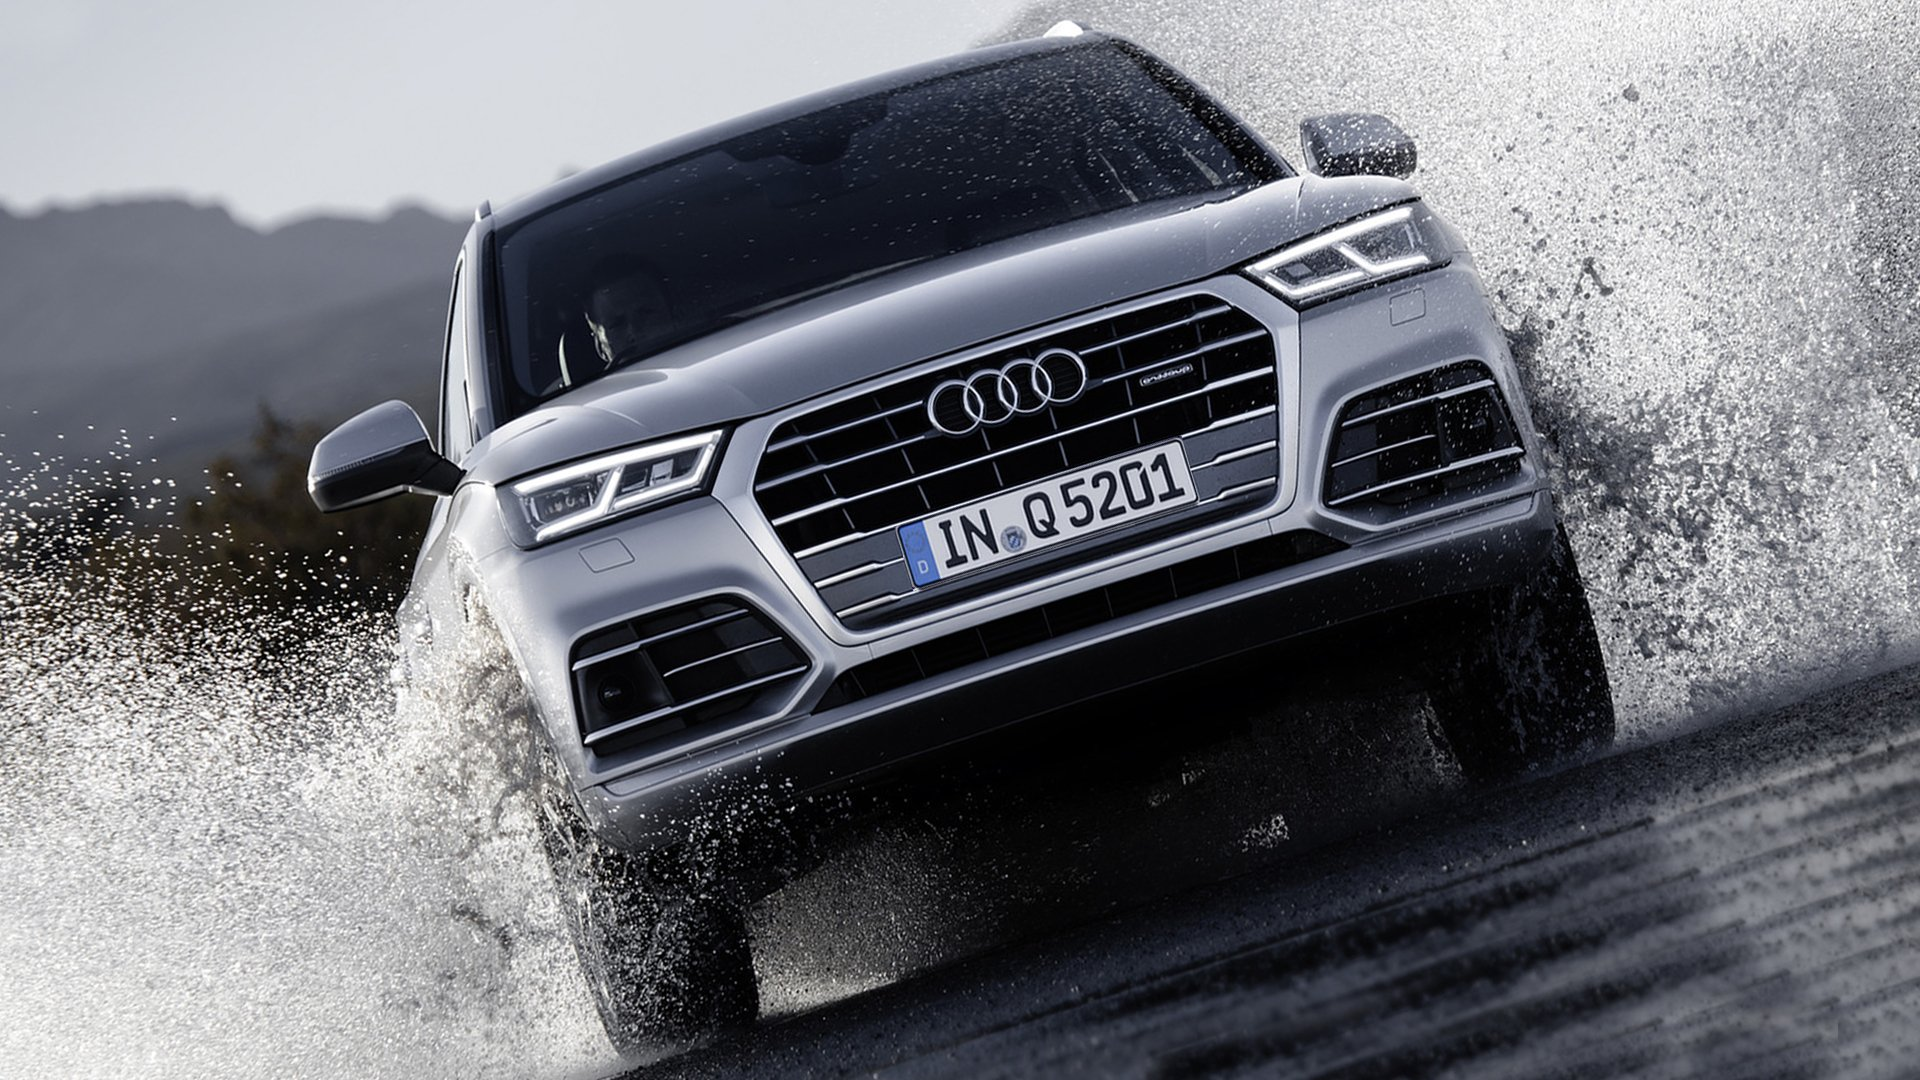 Wallpaper Andriod iPhone Audi Q5 HD